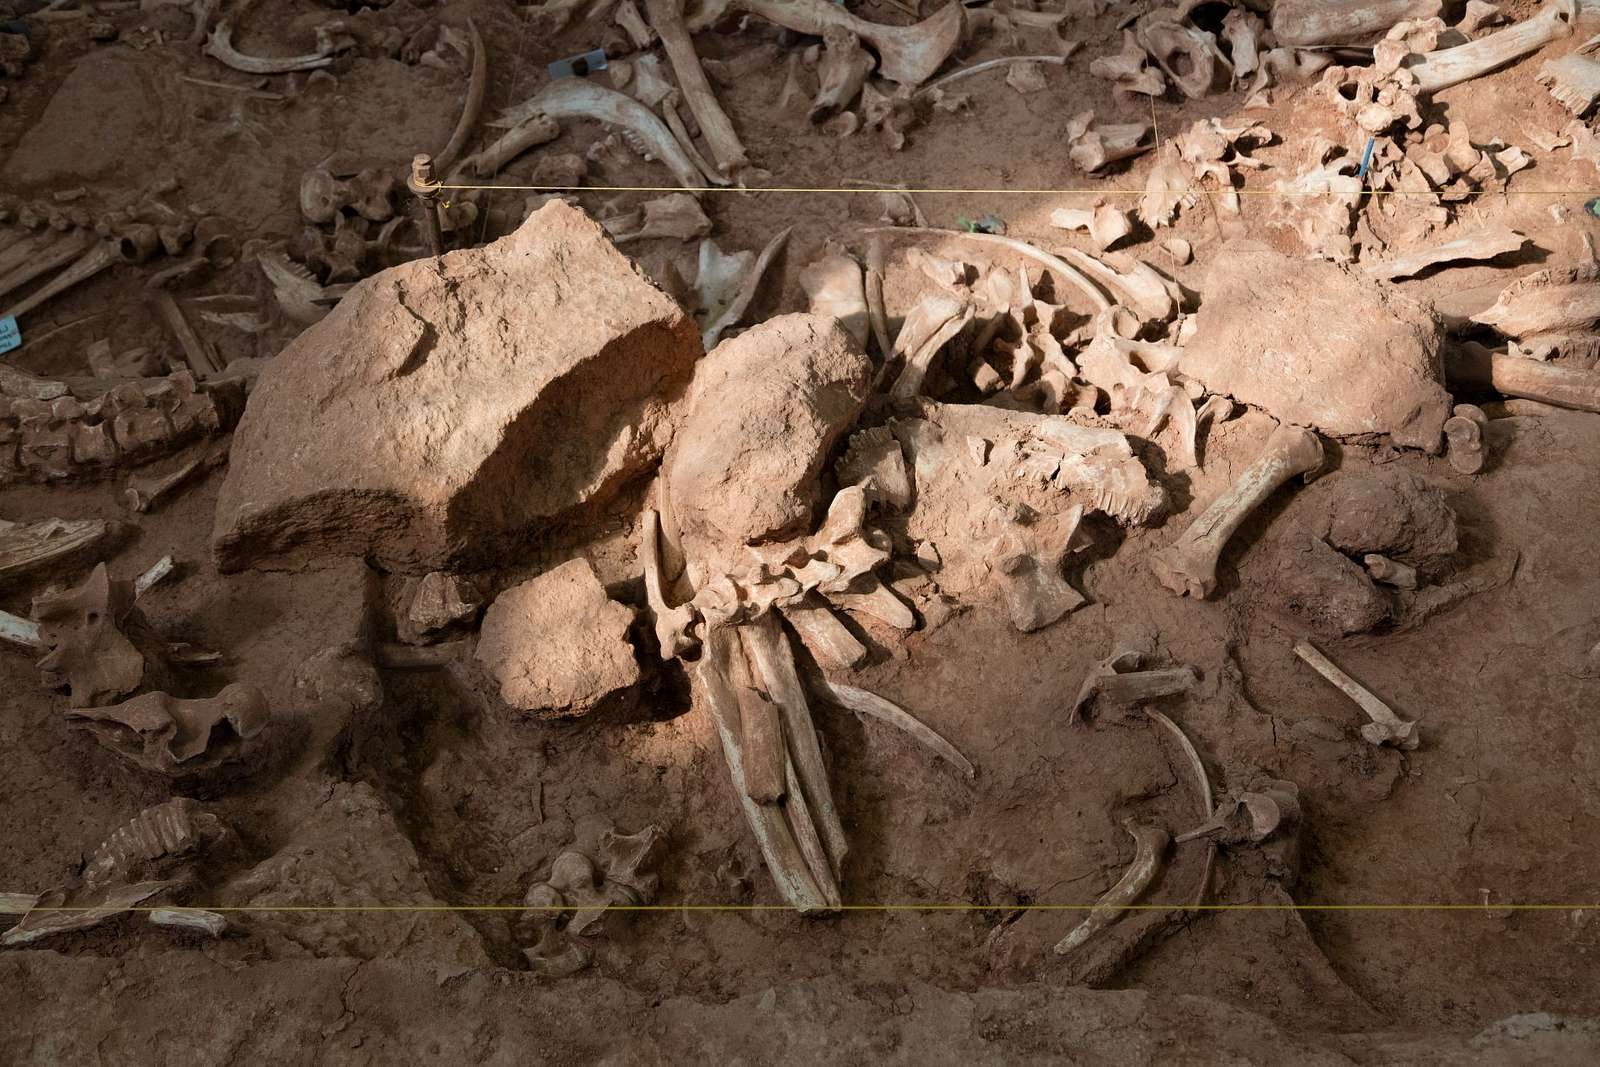 American bison, or buffalo, bones at the Vore Buffalo Jump, a sinkhole and archeological site in Crook County, Wyoming